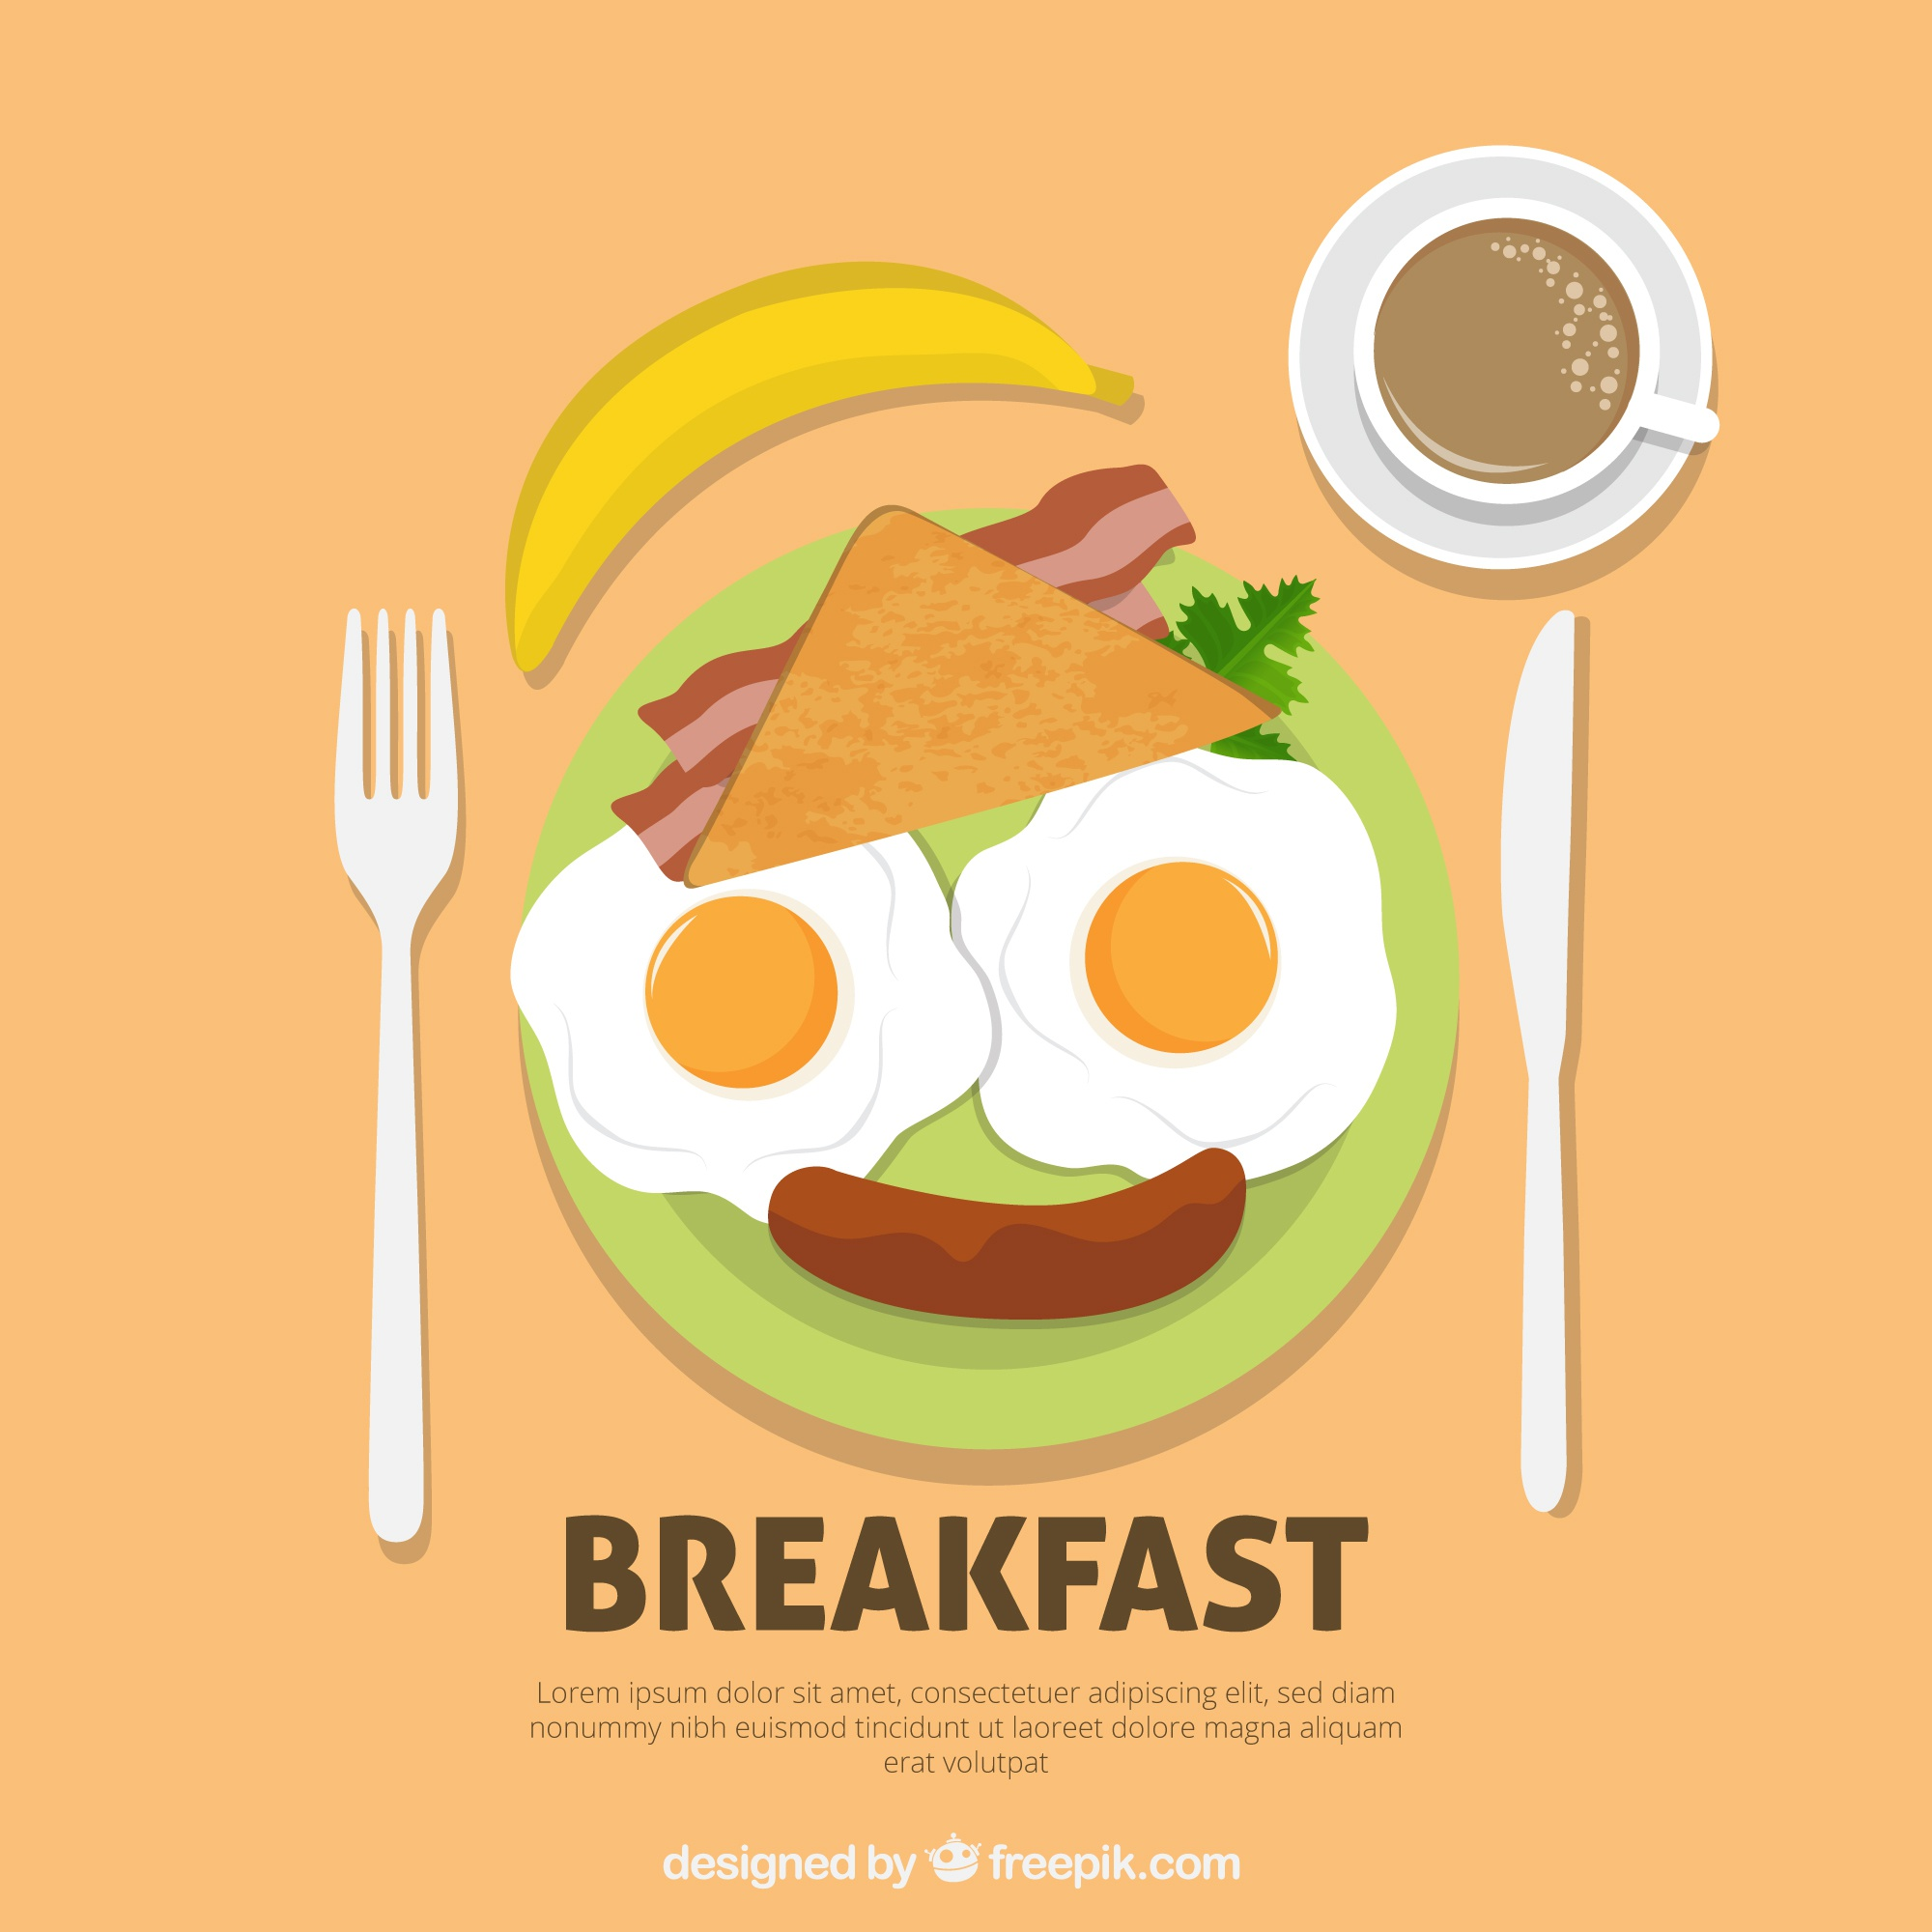 Enjoyable face made up of breakfast food